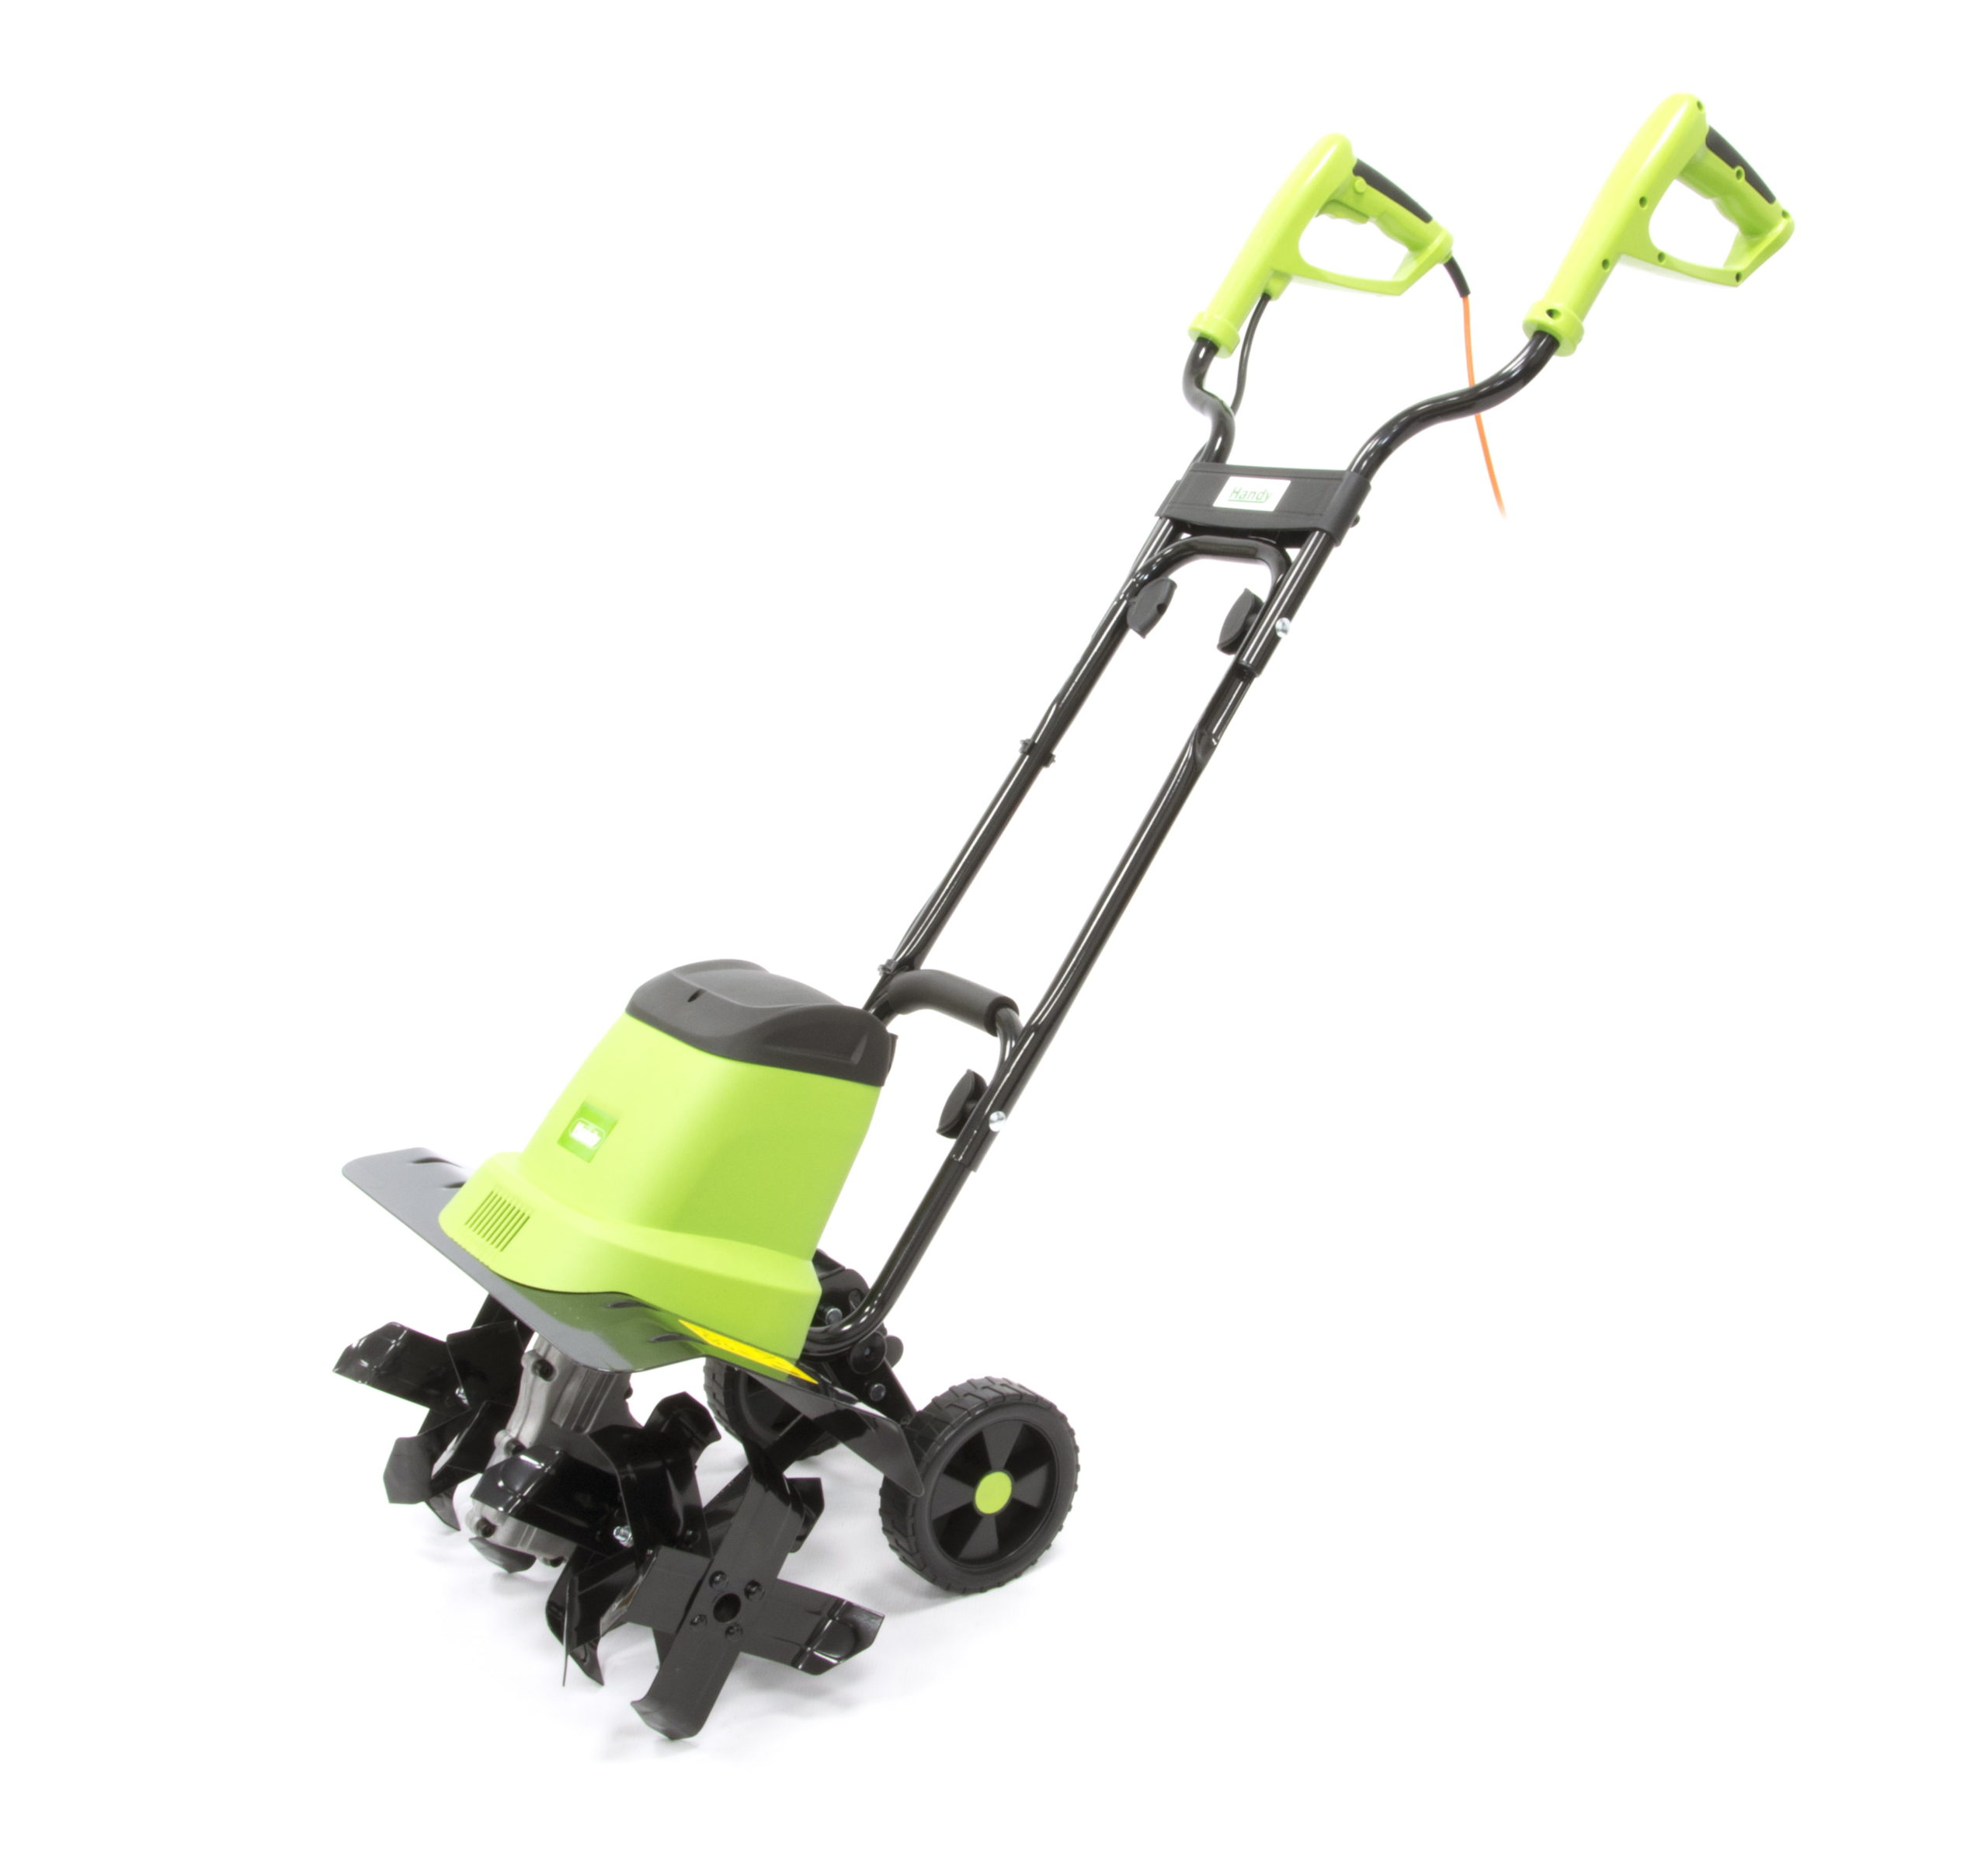 The Handy 1400watt 43cm Electric Tiller